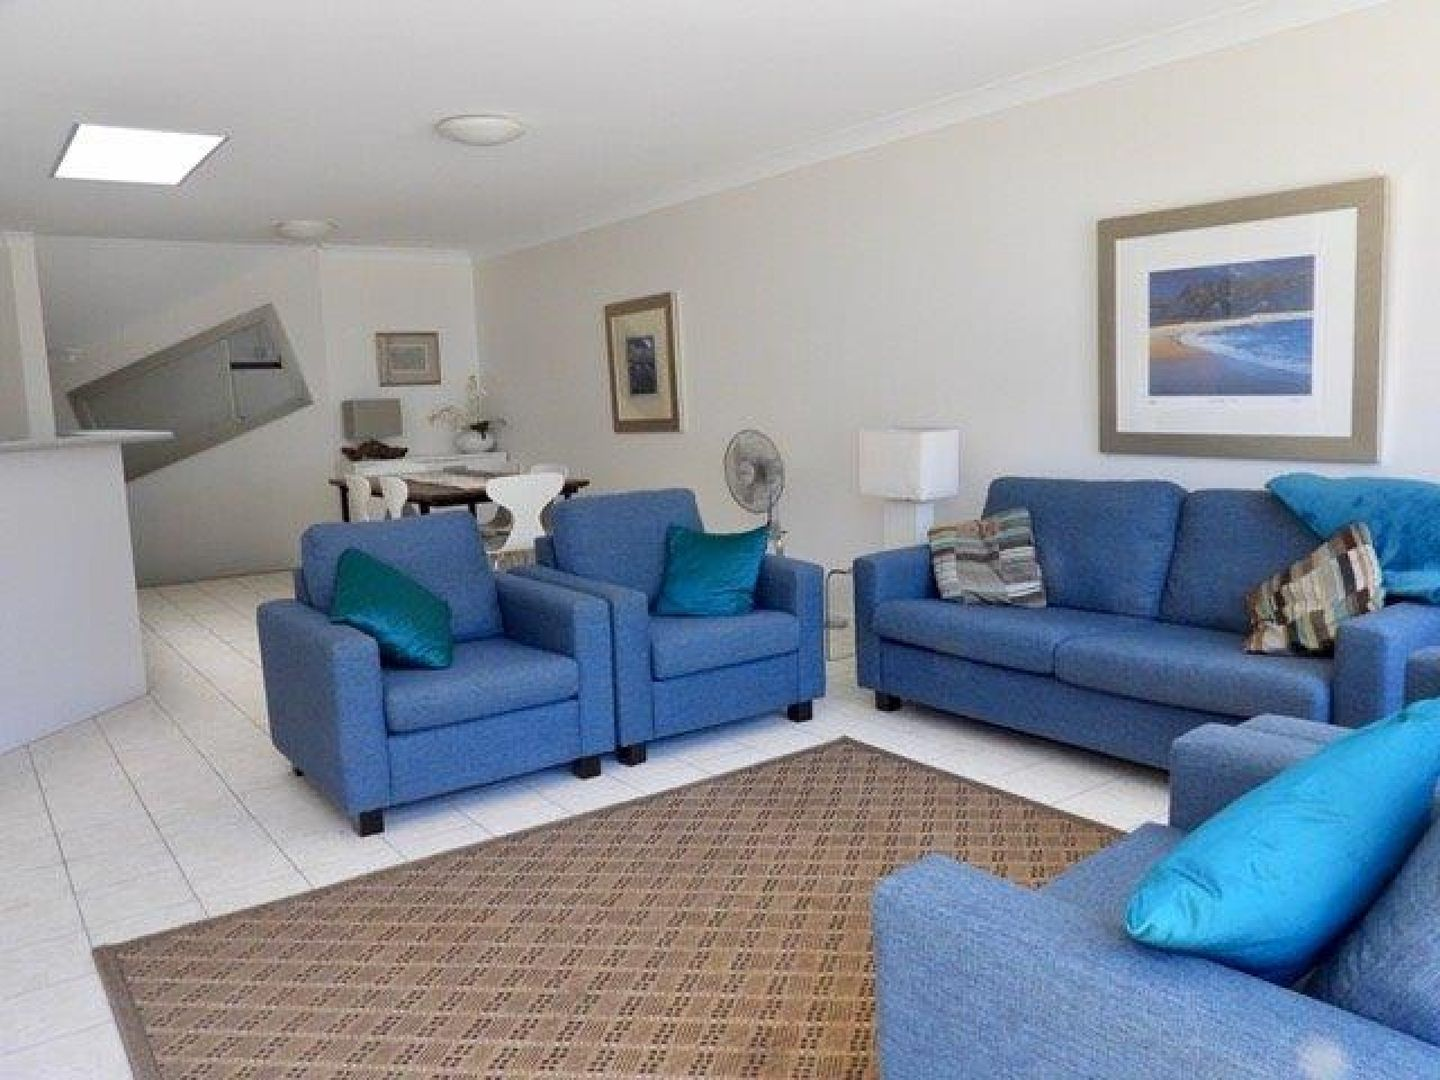 6/8 EDGEWOOD PLACE, Denhams Beach NSW 2536, Image 0